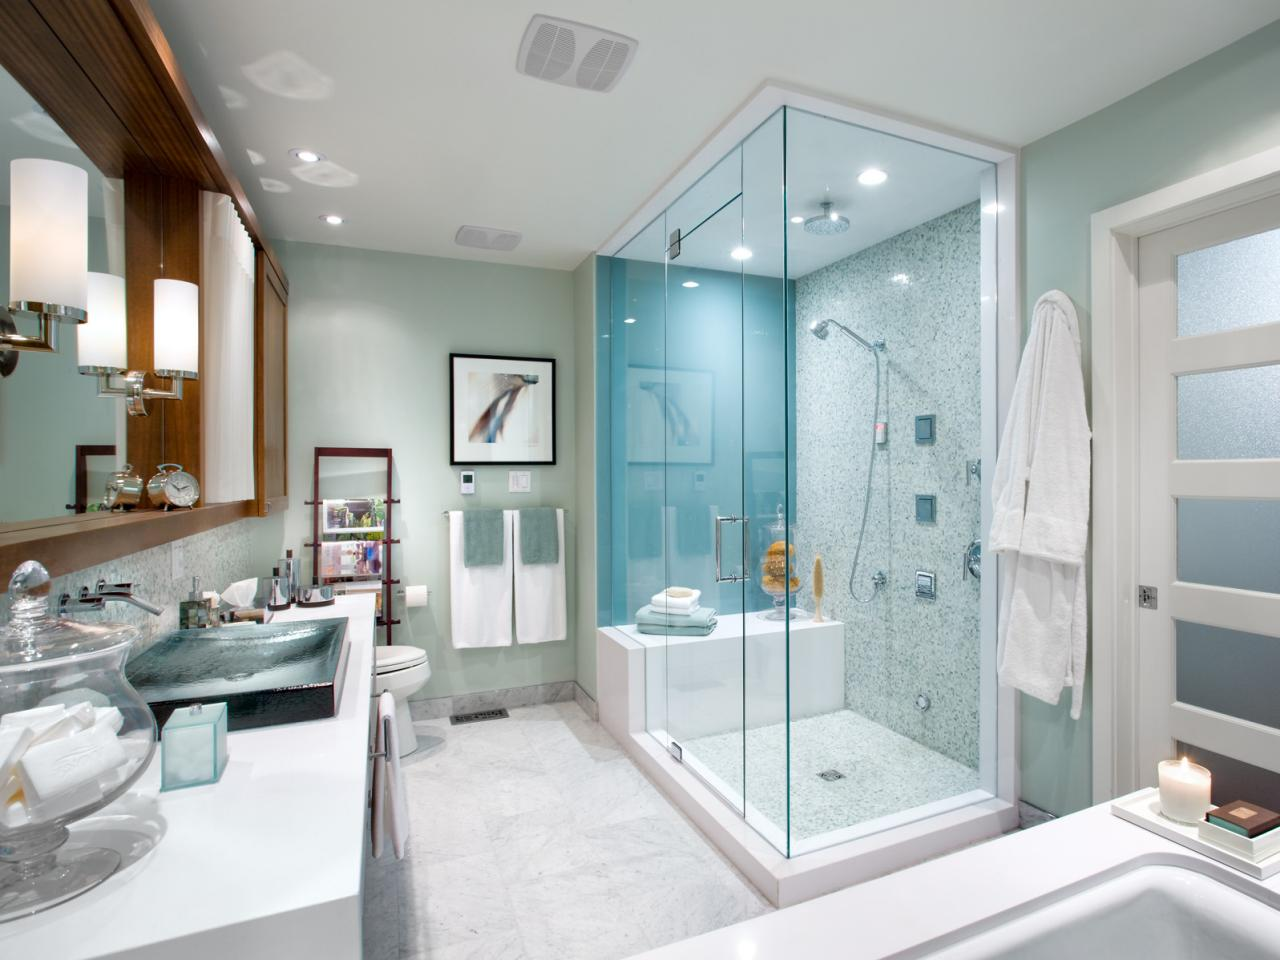 Bathroom Remodeling Ideas On A Budget That Are Budget Friendly Custom Home Design